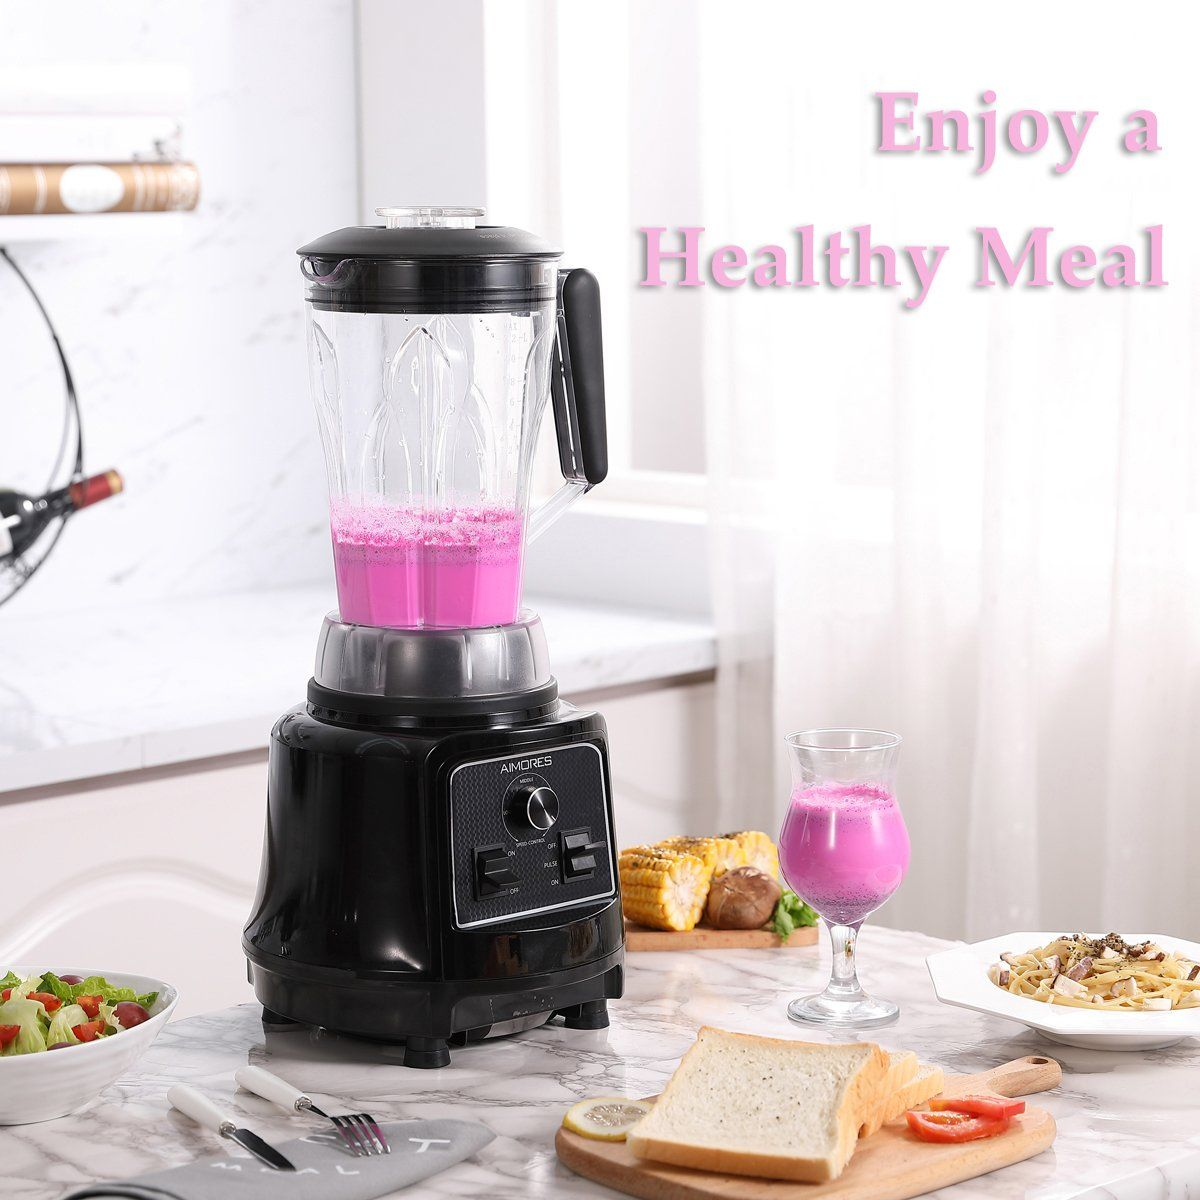 Aimores commercial blender for shakes and smoothies food